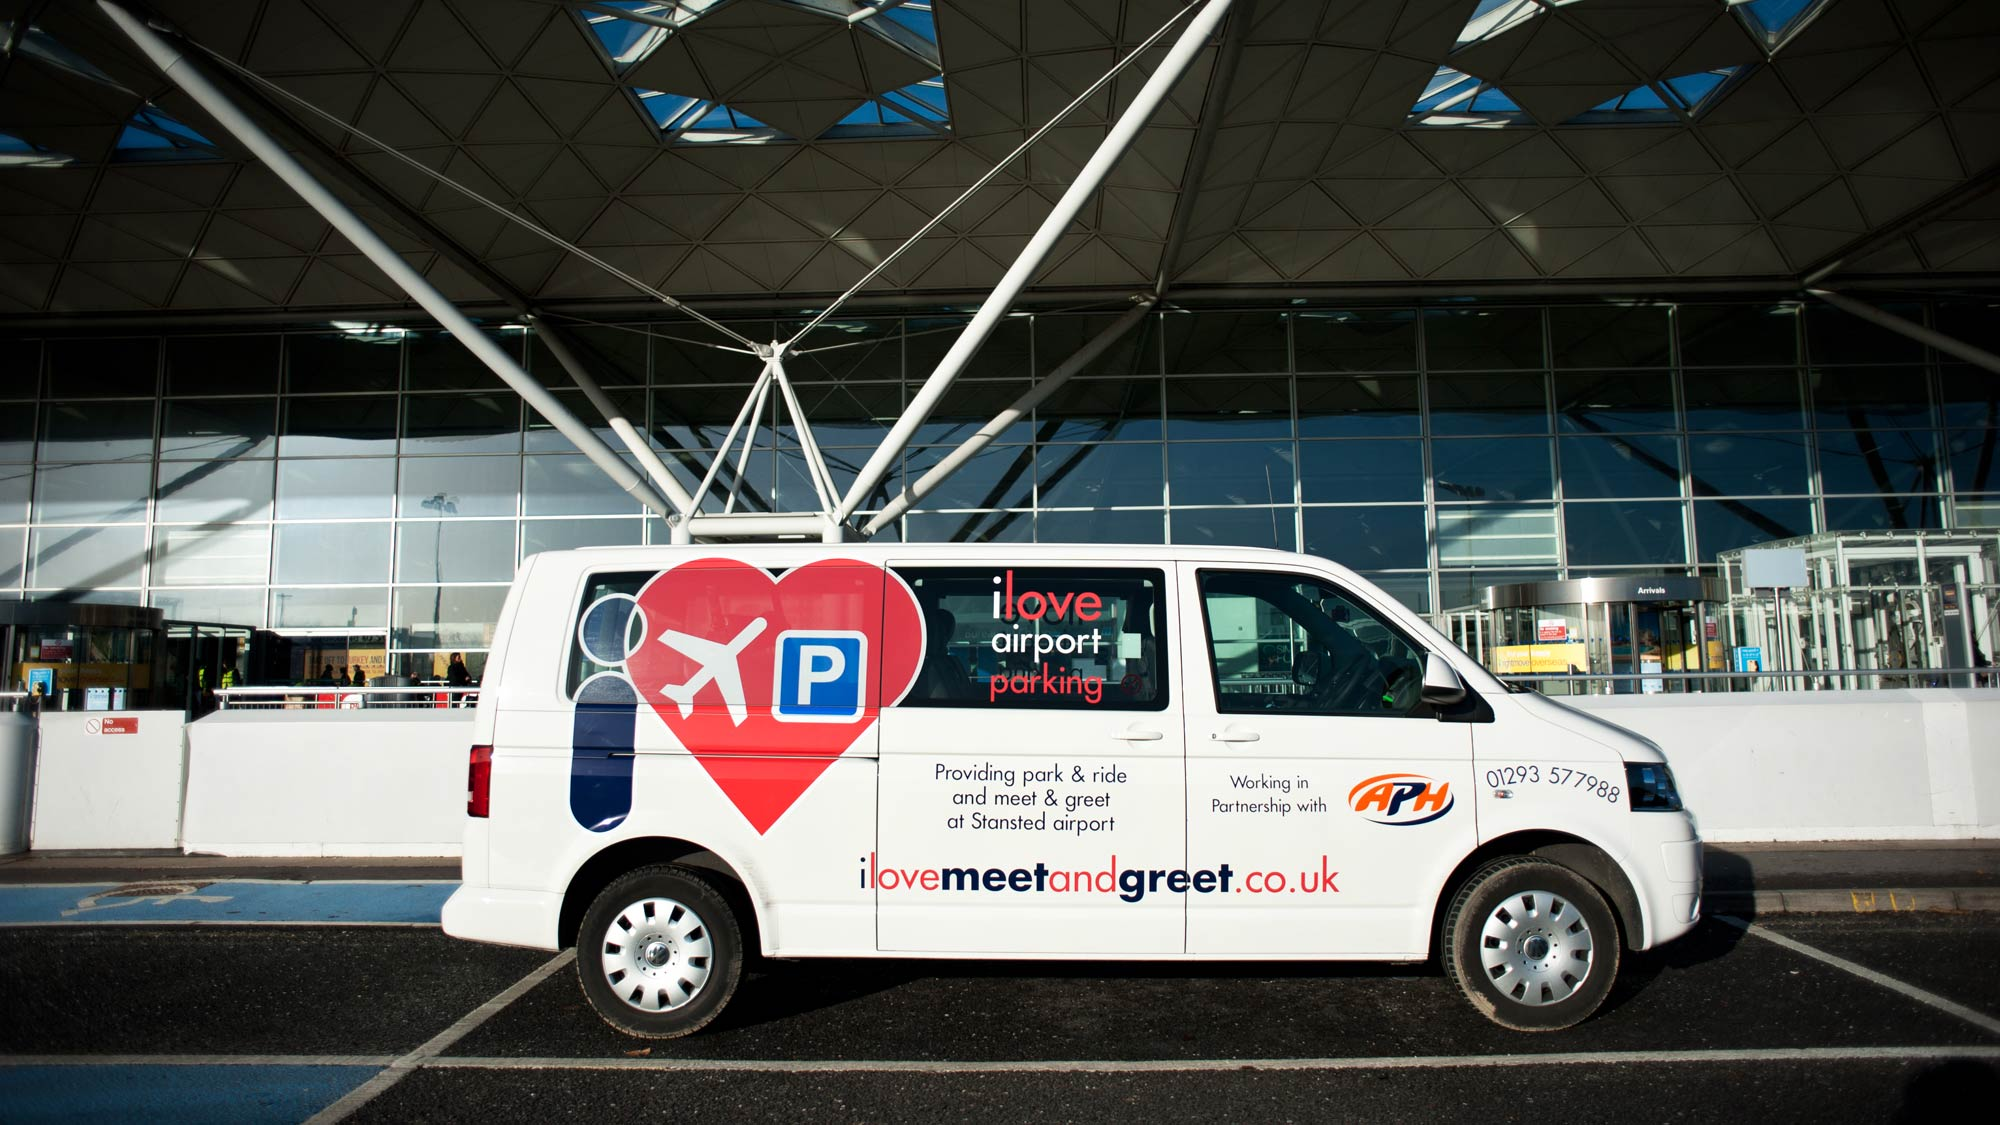 Meet and greet airport parking heathrow gallery greetings card purple parking heathrow meet and greet images greetings card m4hsunfo